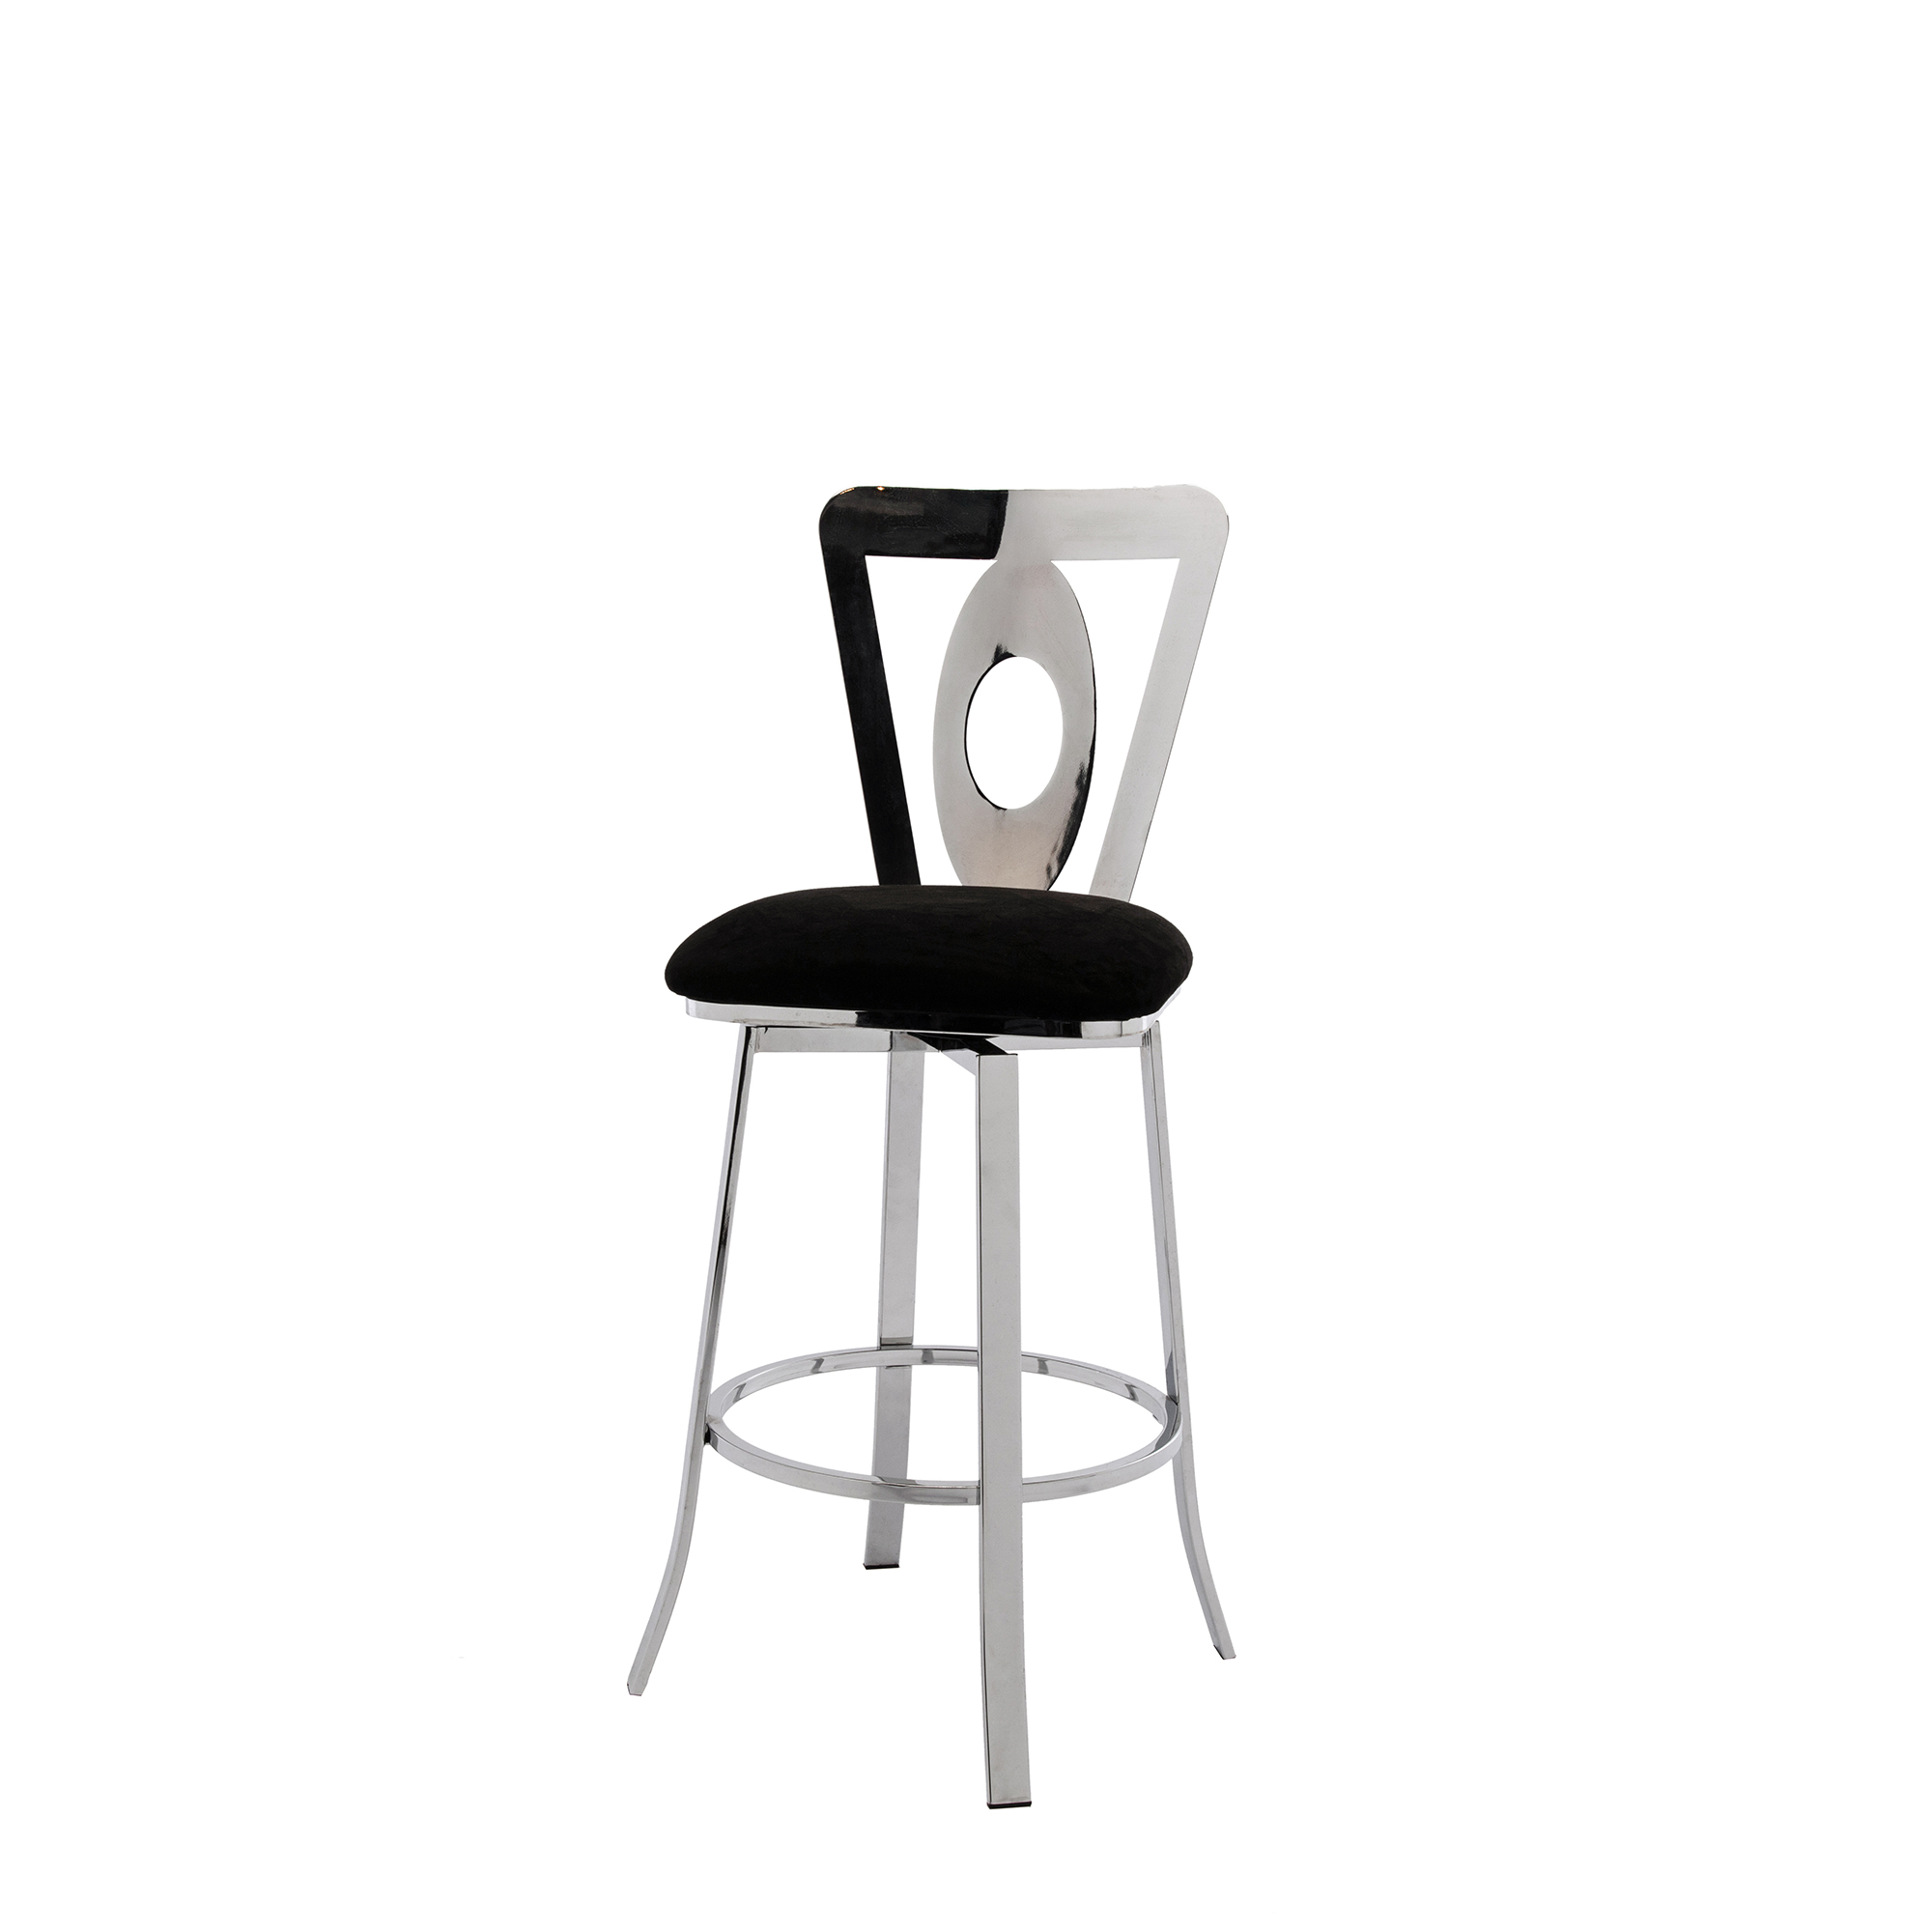 Modern Furniture Breakfast Counter Black Velvet Silver Metal Base Bar Stools Chairs With High Back